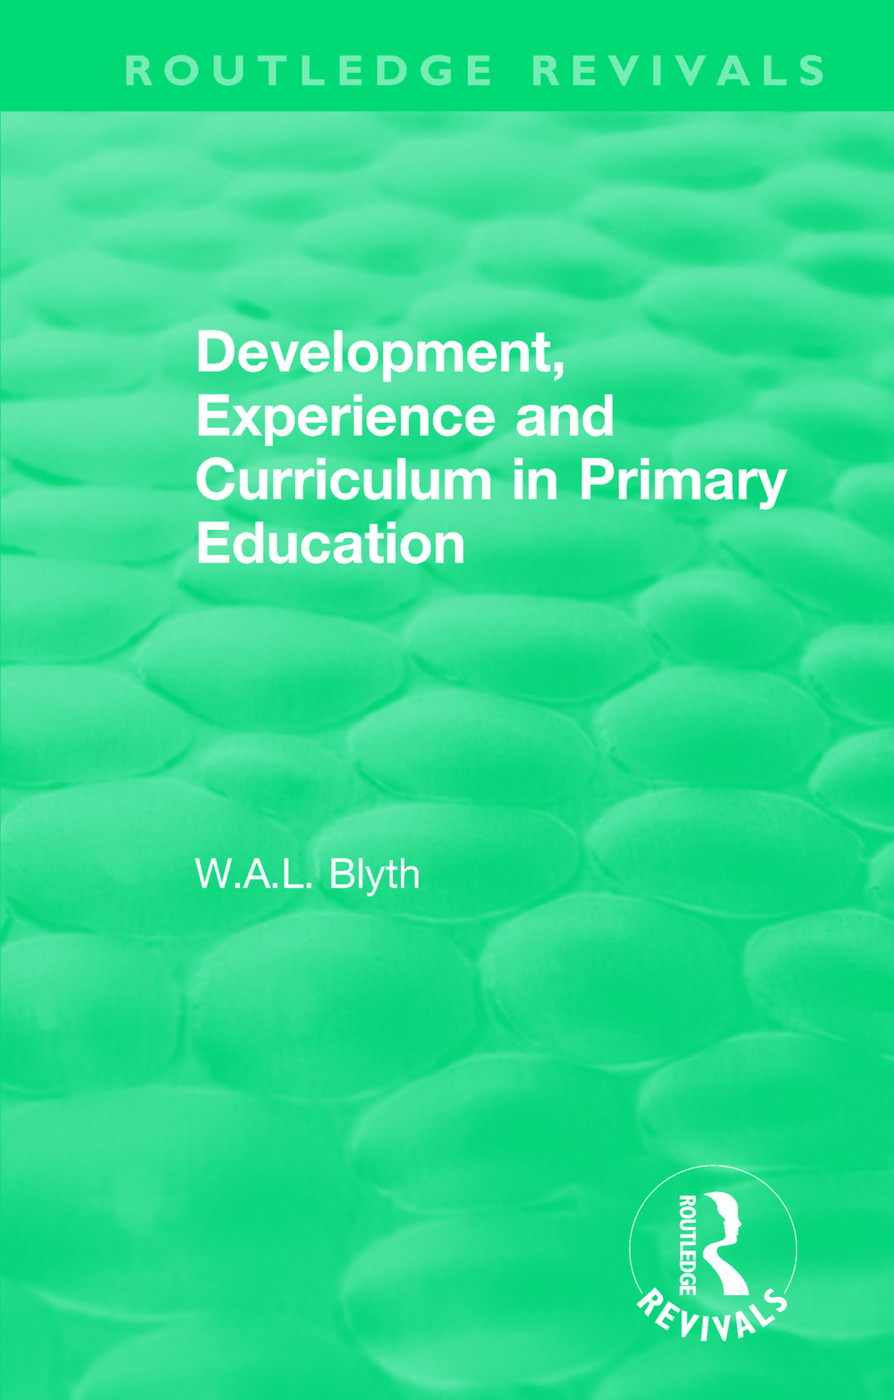 Development, Experience and Curriculum in Primary Education (1984) book cover